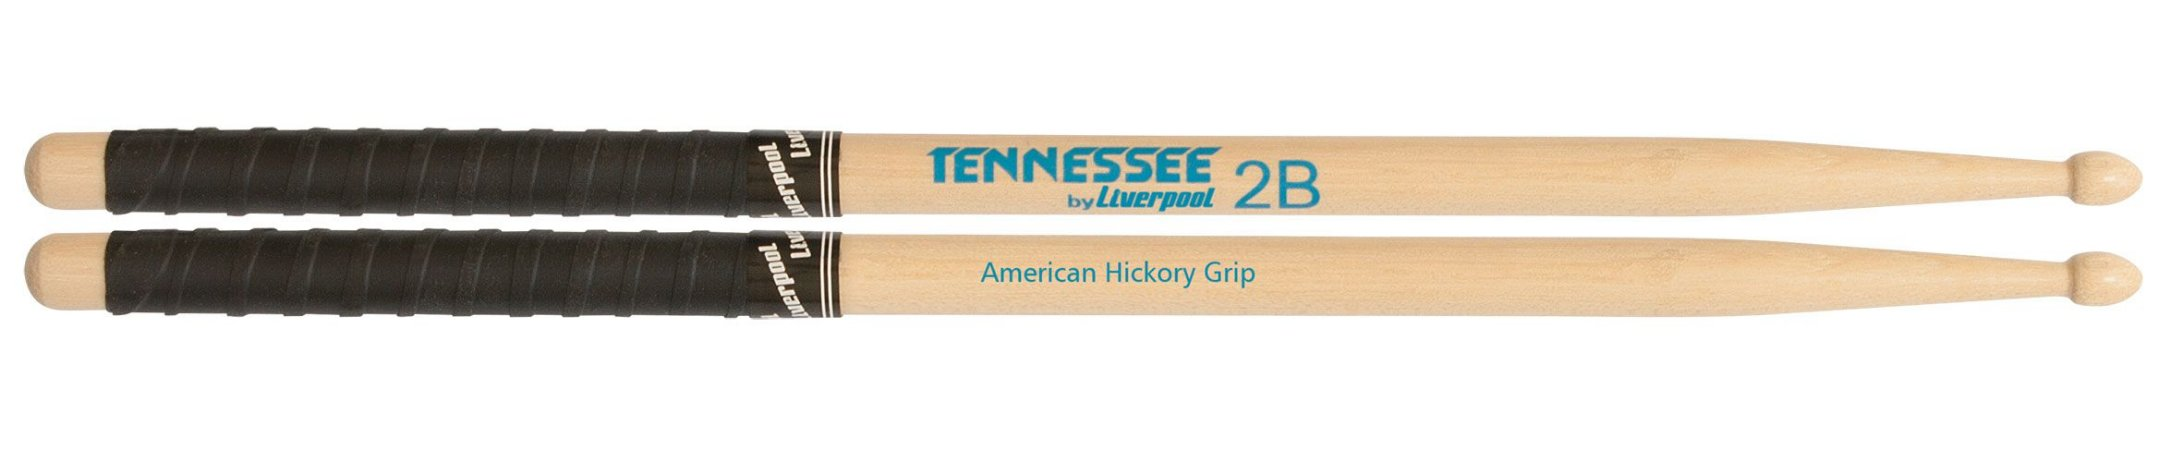 Liverpool Tennessee Baqueta Special Grip Hickory 2b Tnhy2bmg